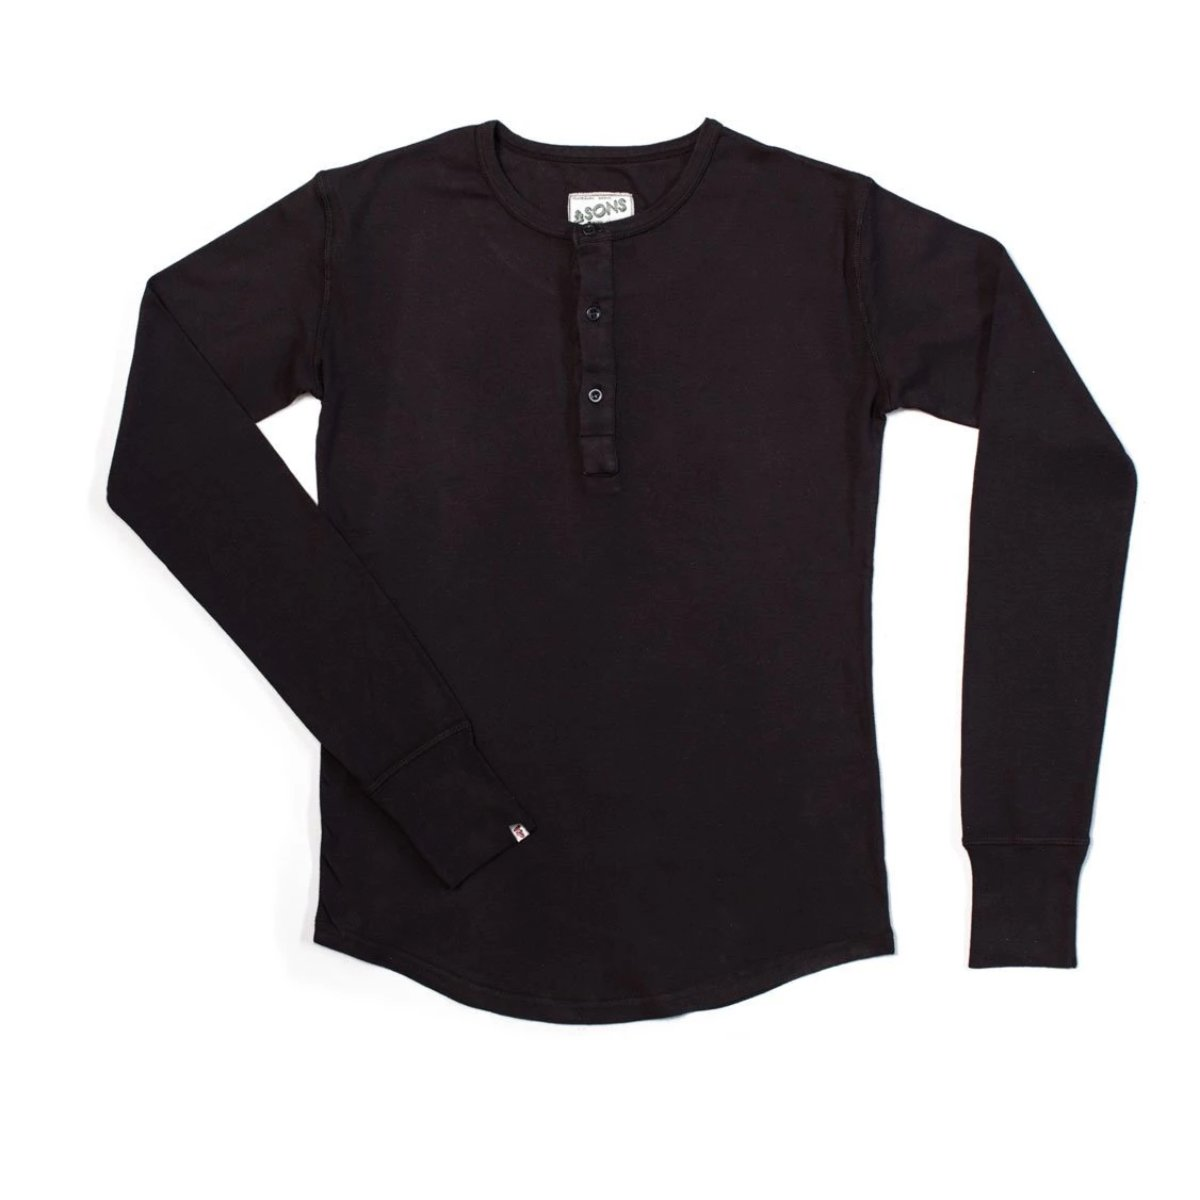 &SONS Elder Grandad Top | Henley Shirt Long Sleeve | Heavy Cotton - Black